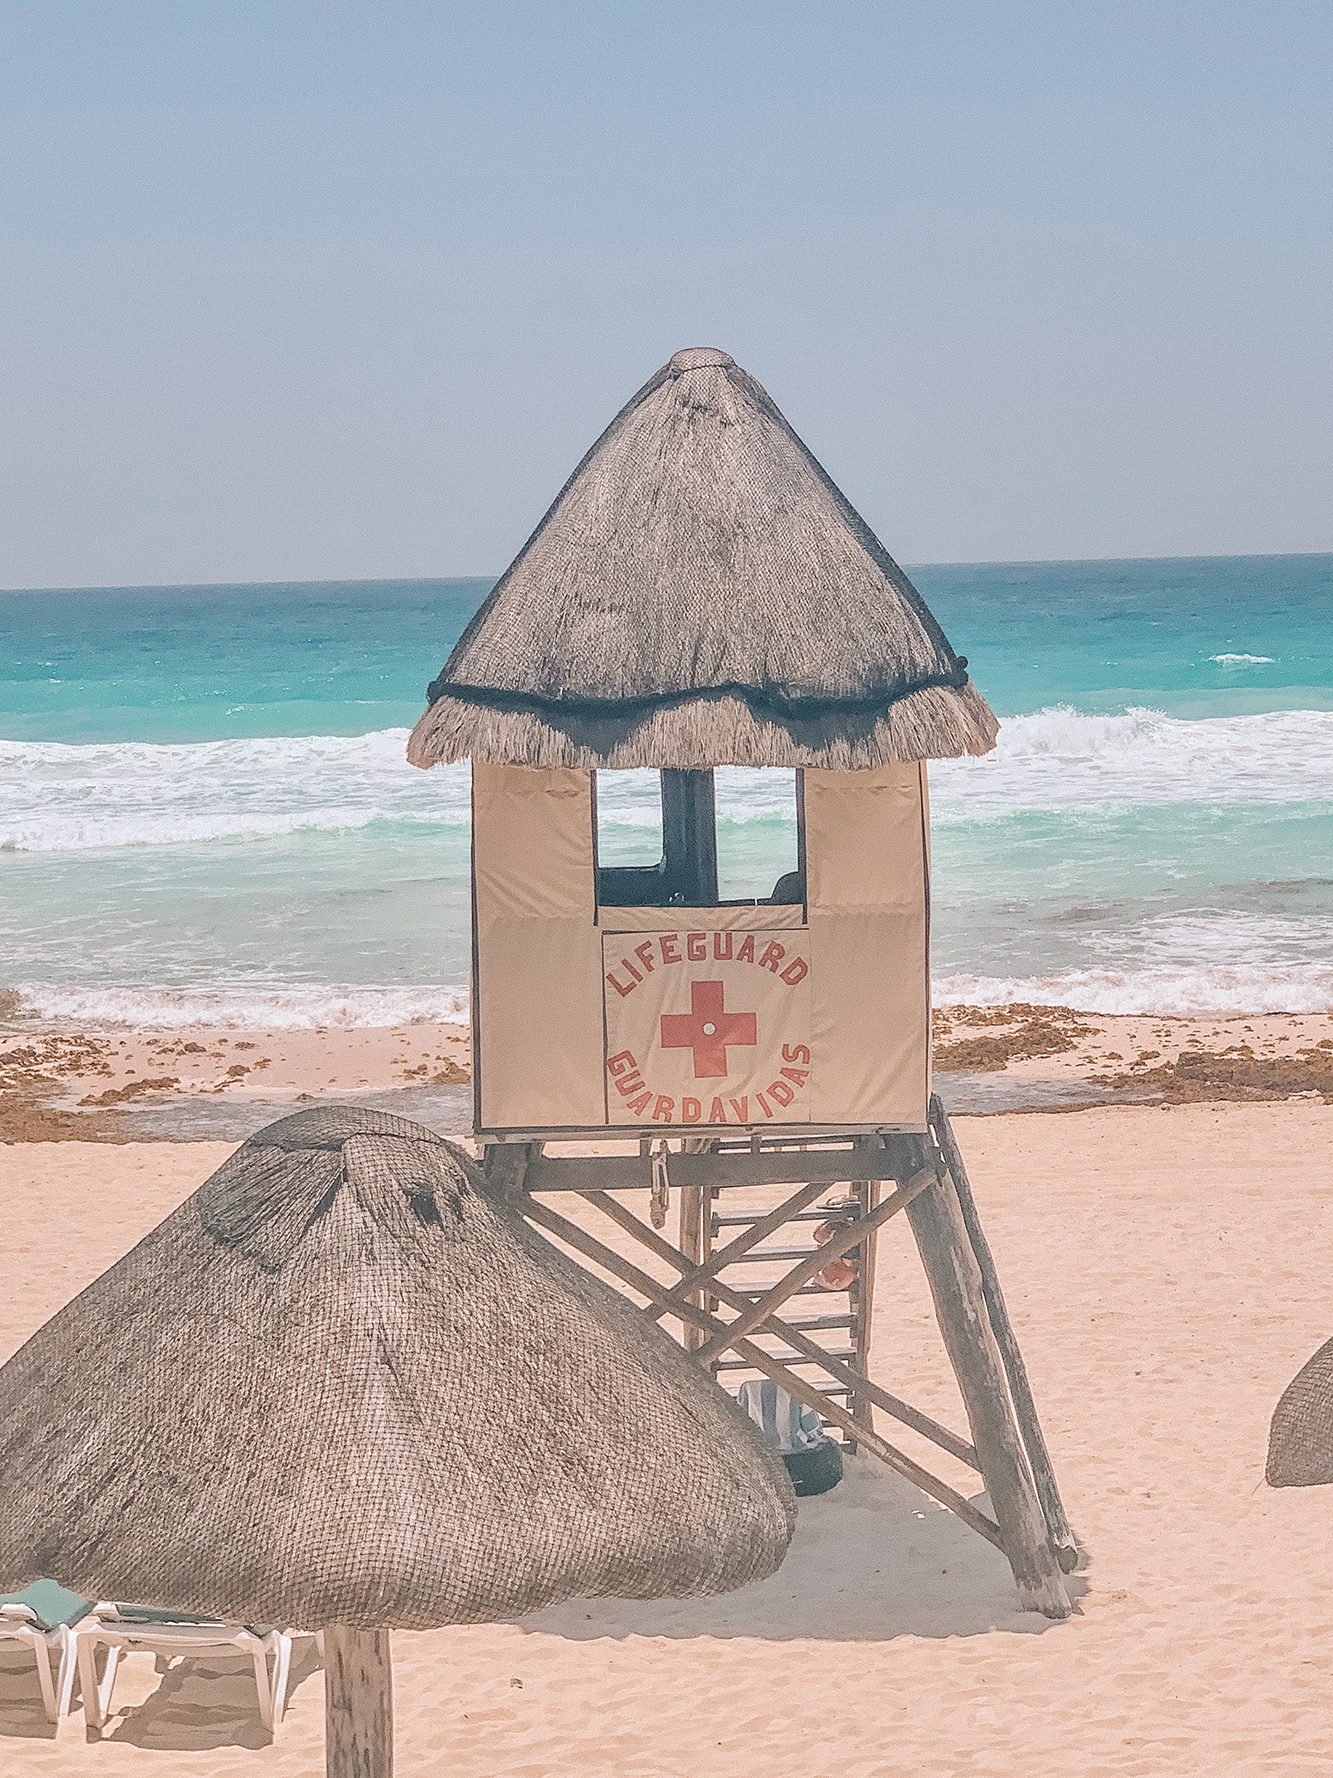 Cancun Mexico Travel Diary | Kristy Wicks